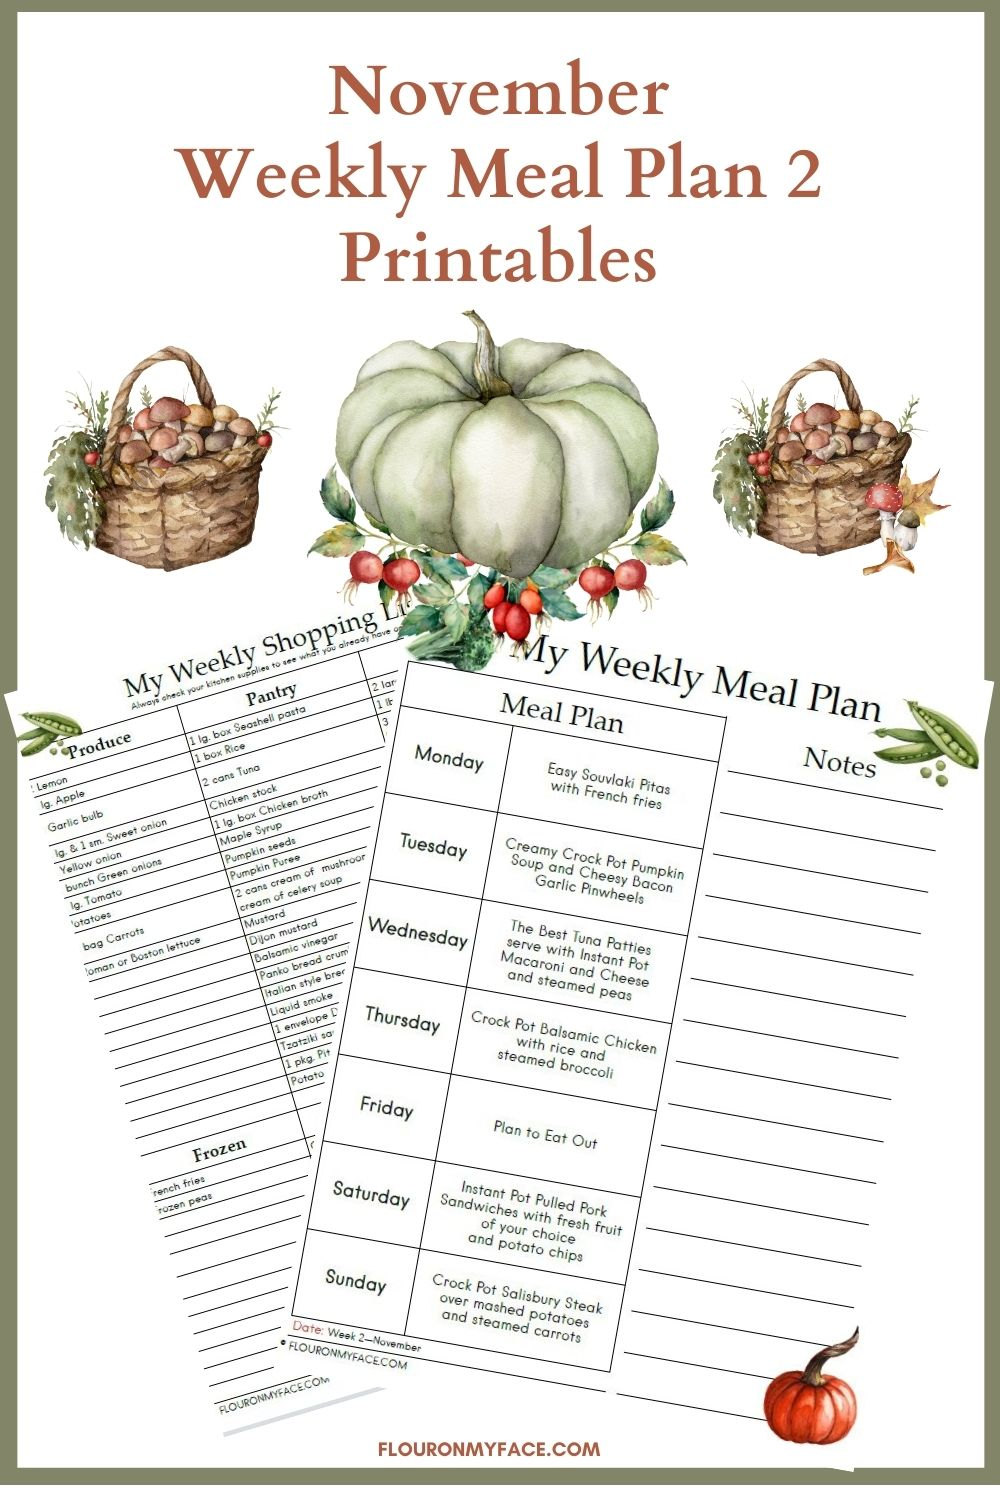 November Meal Plan 2 printable preview